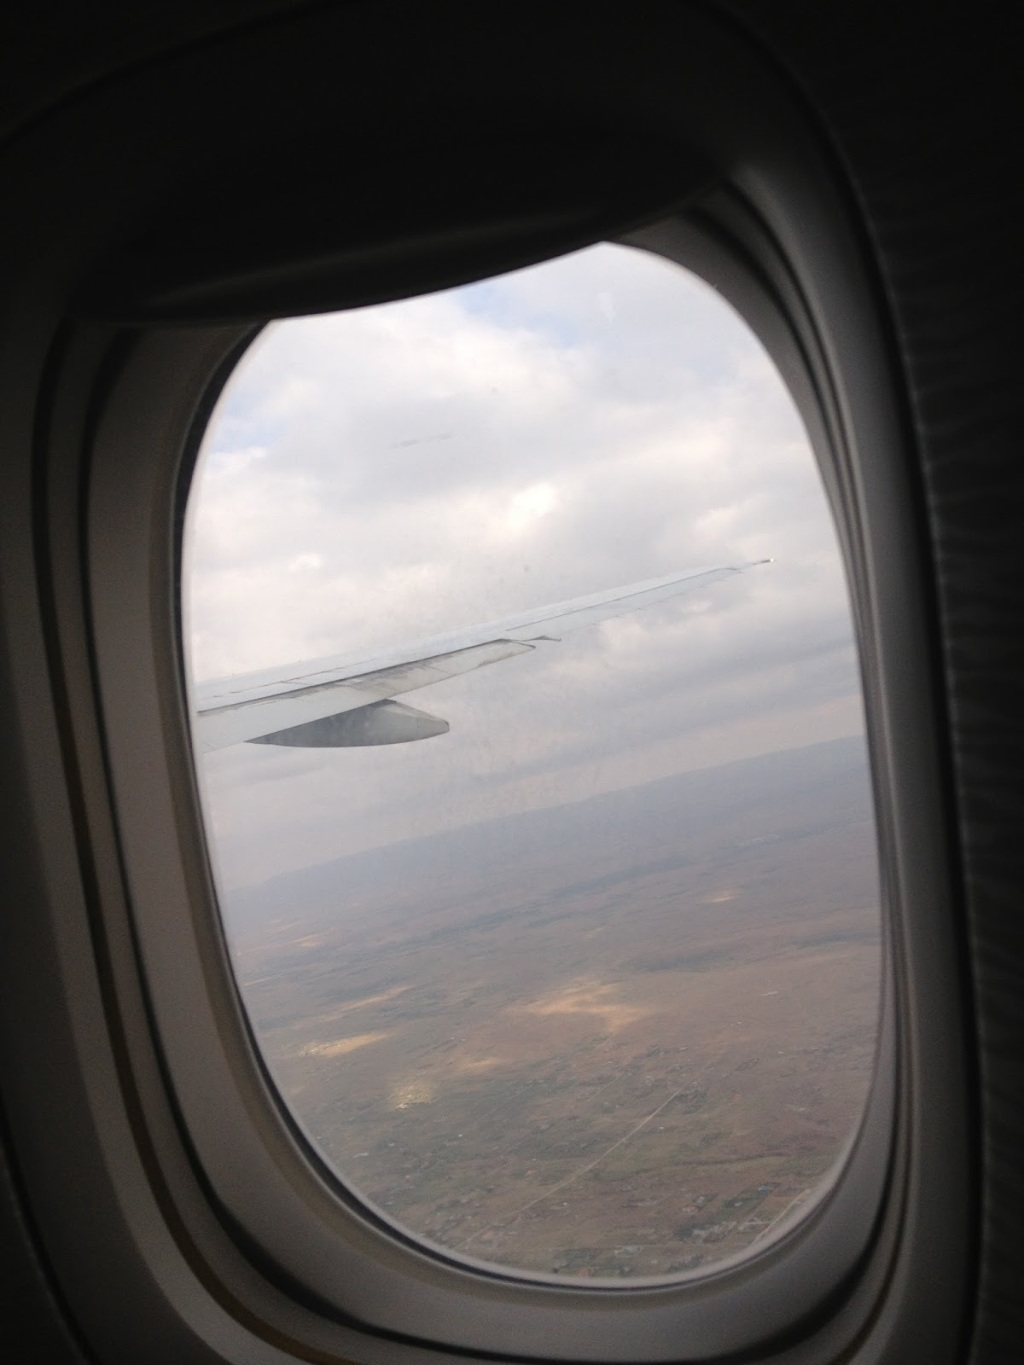 Review Of Emirates Flight From Nairobi To Dubai In Economy